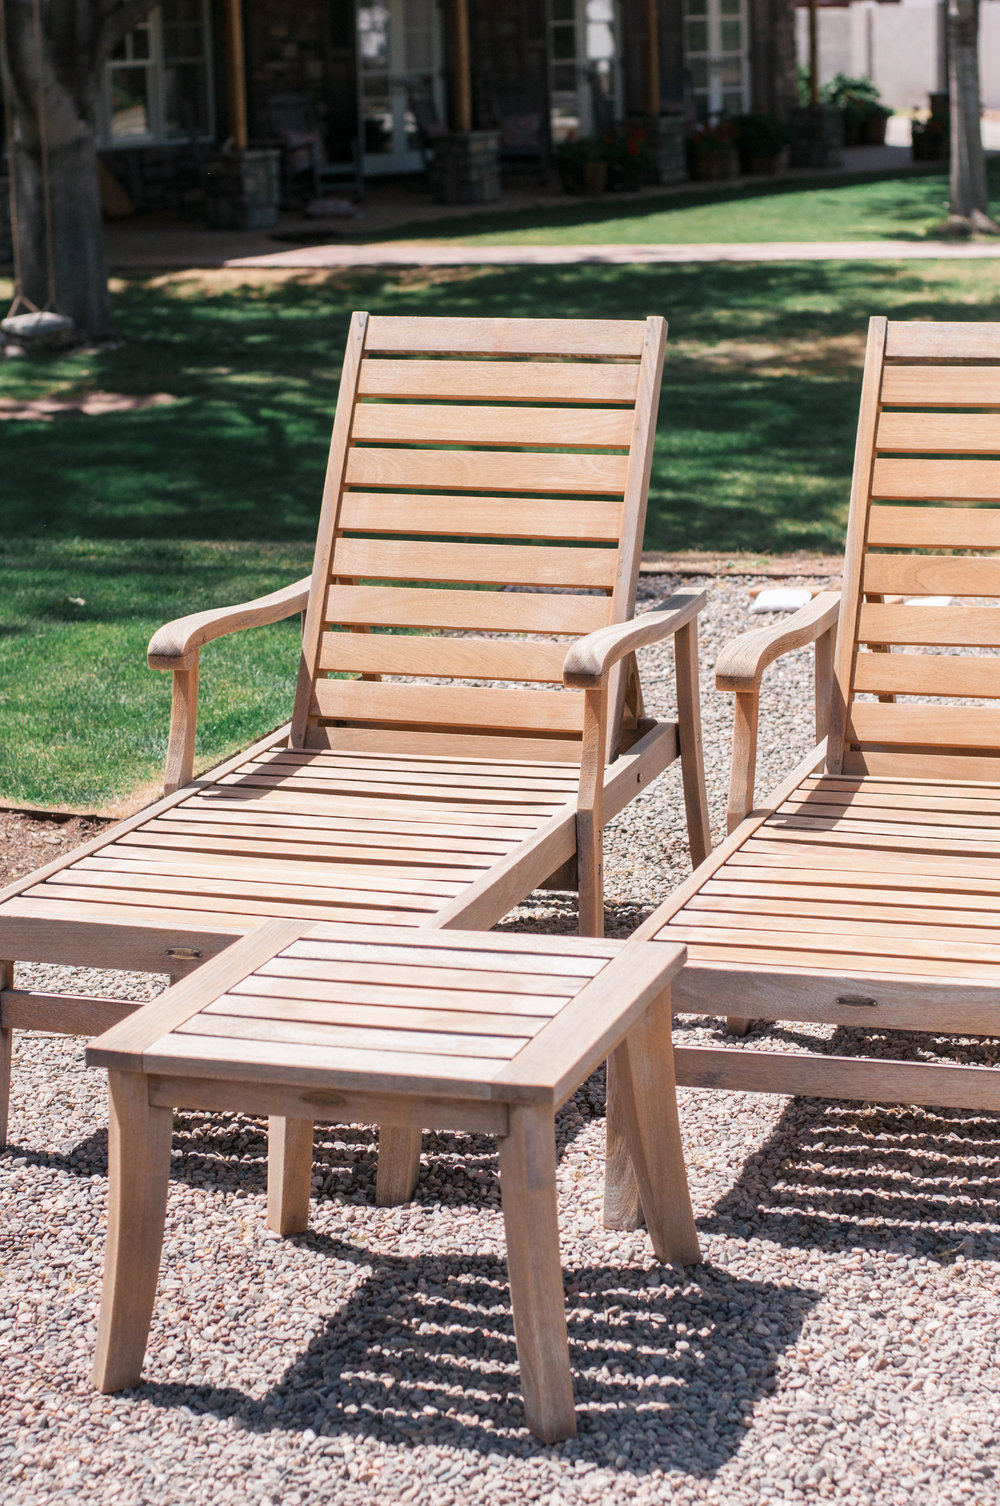 What You Need to Know About Teak Wood Furniture Care